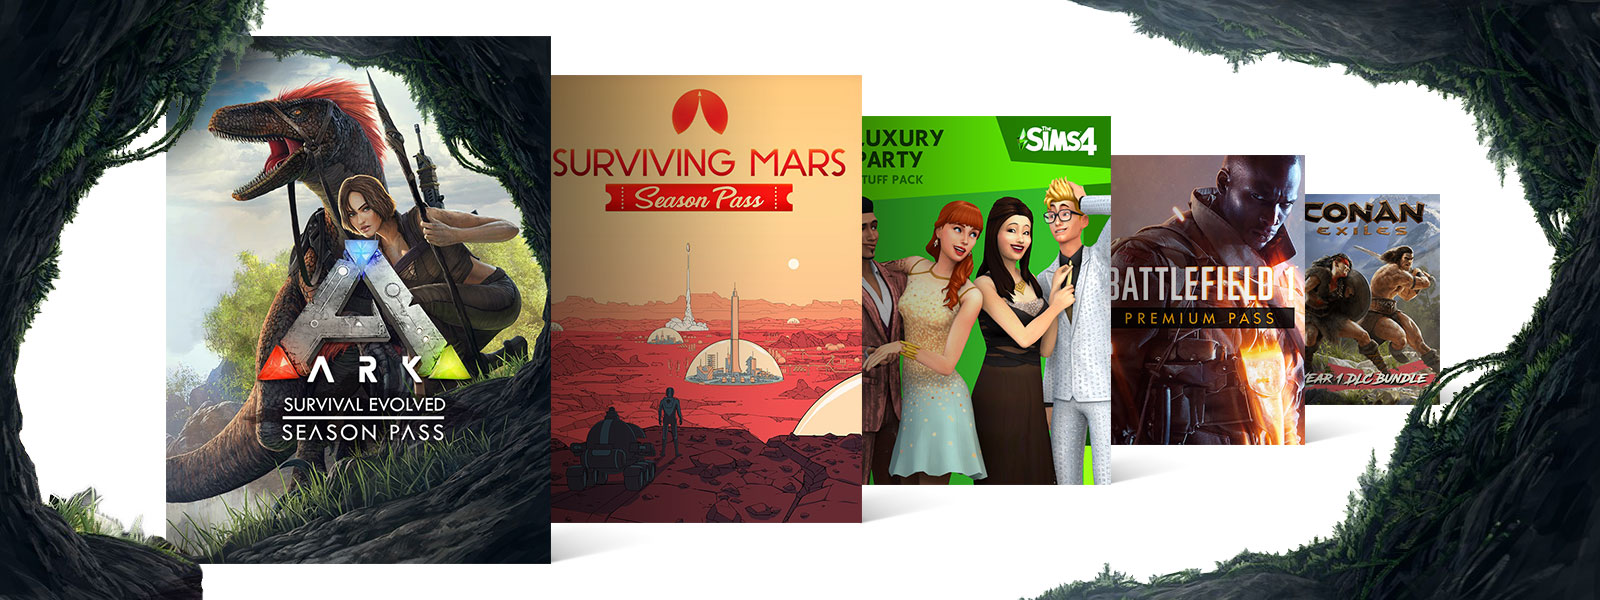 Collage of DLC for Xbox One games on sale, including ARK Survival Evolved Season Pass, Surviving Mars Season Pass, and Battlefield 1 Premium Pass